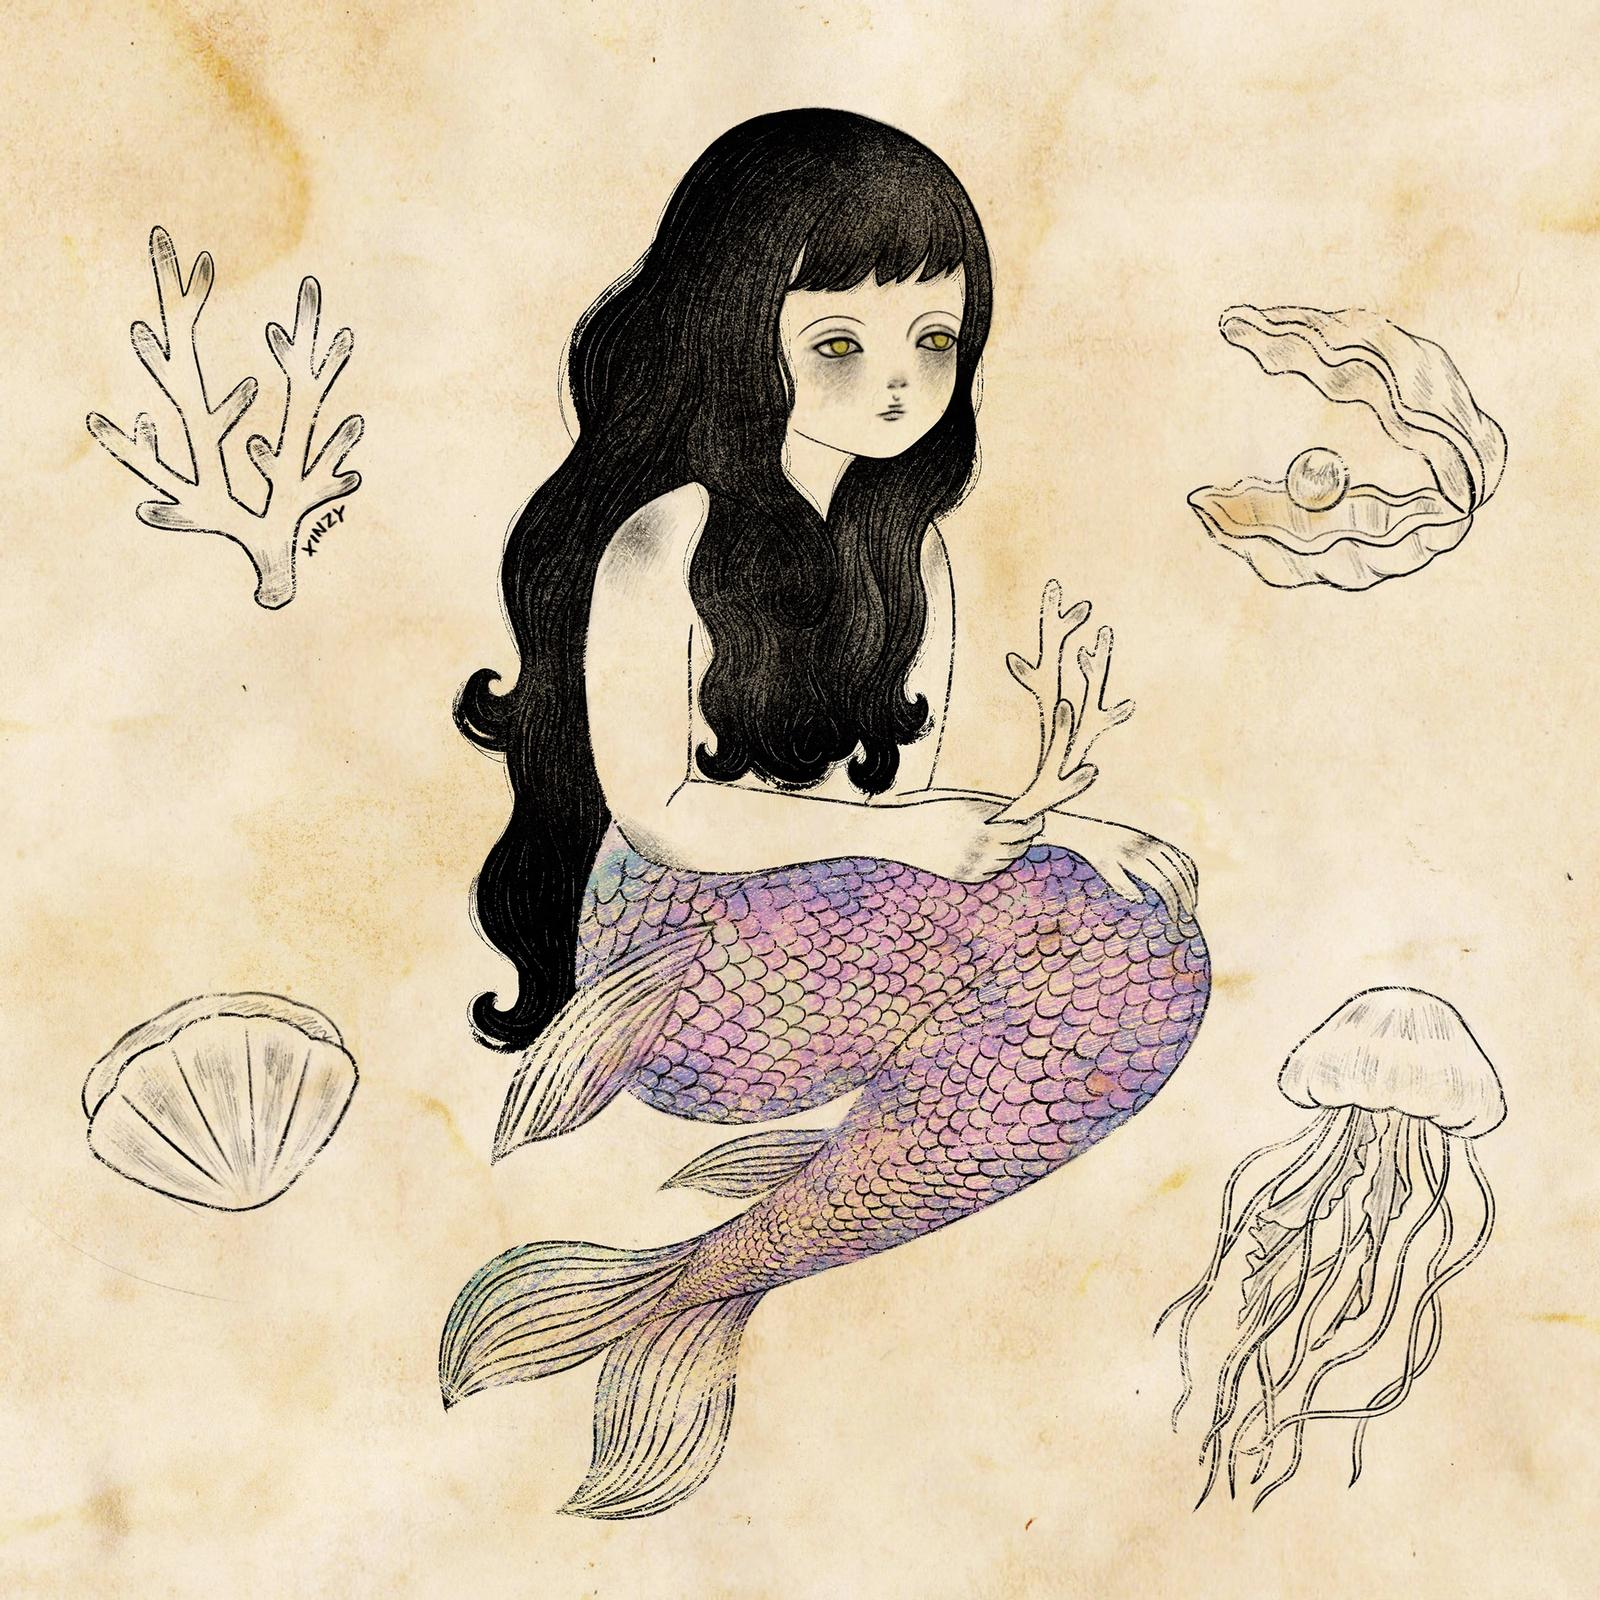 The Mermaid Collection #1